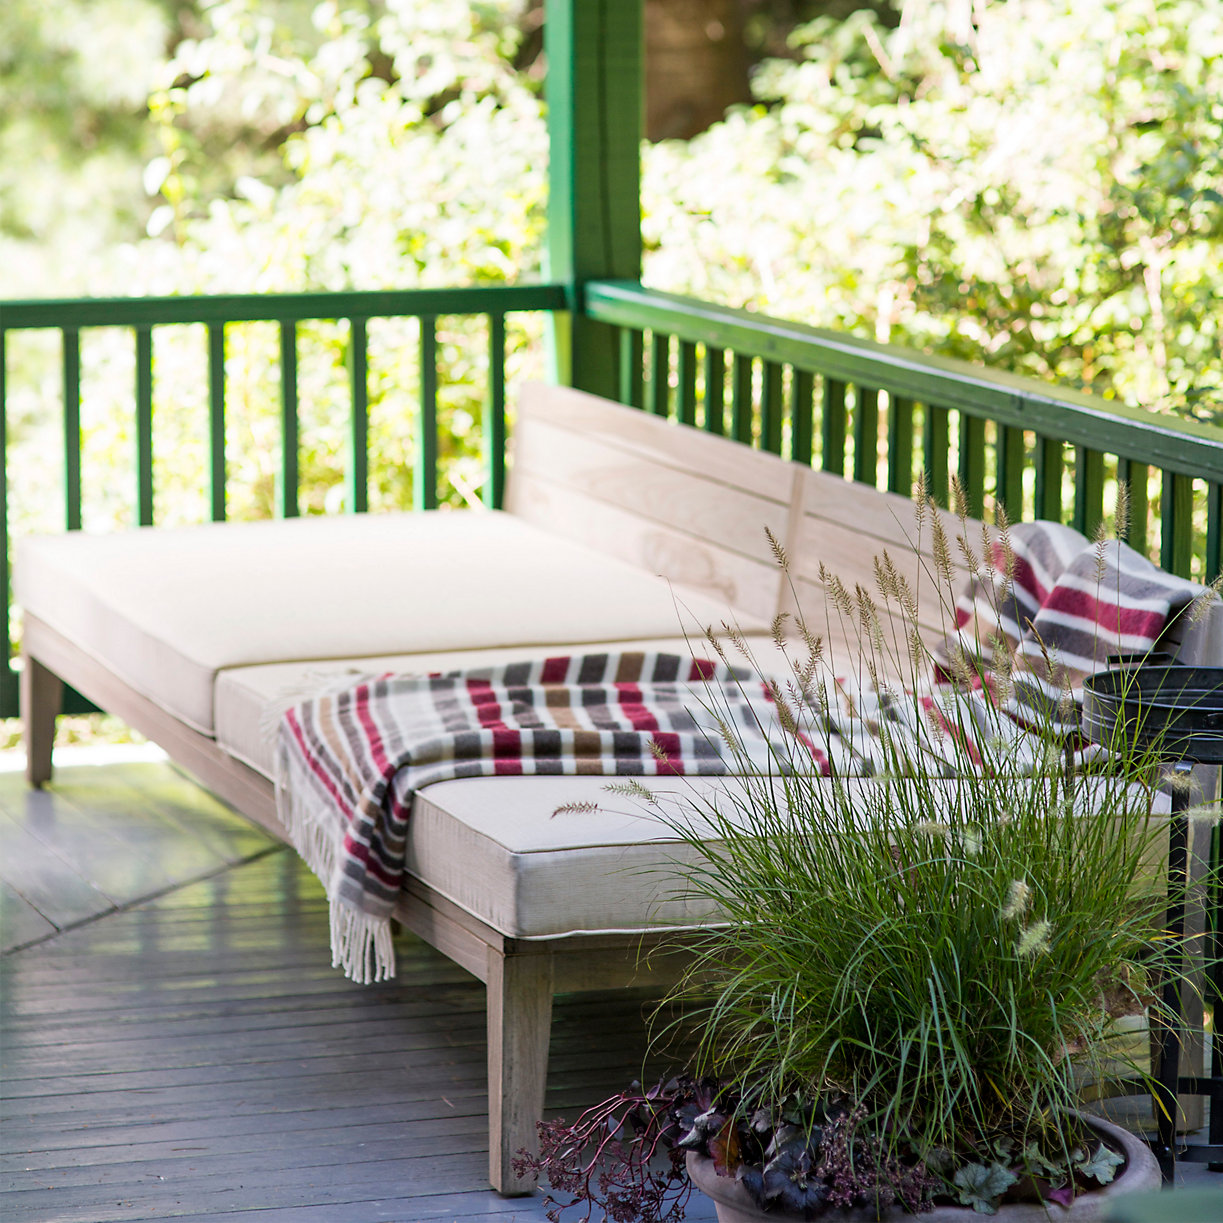 Cozy outdoor space with blanket